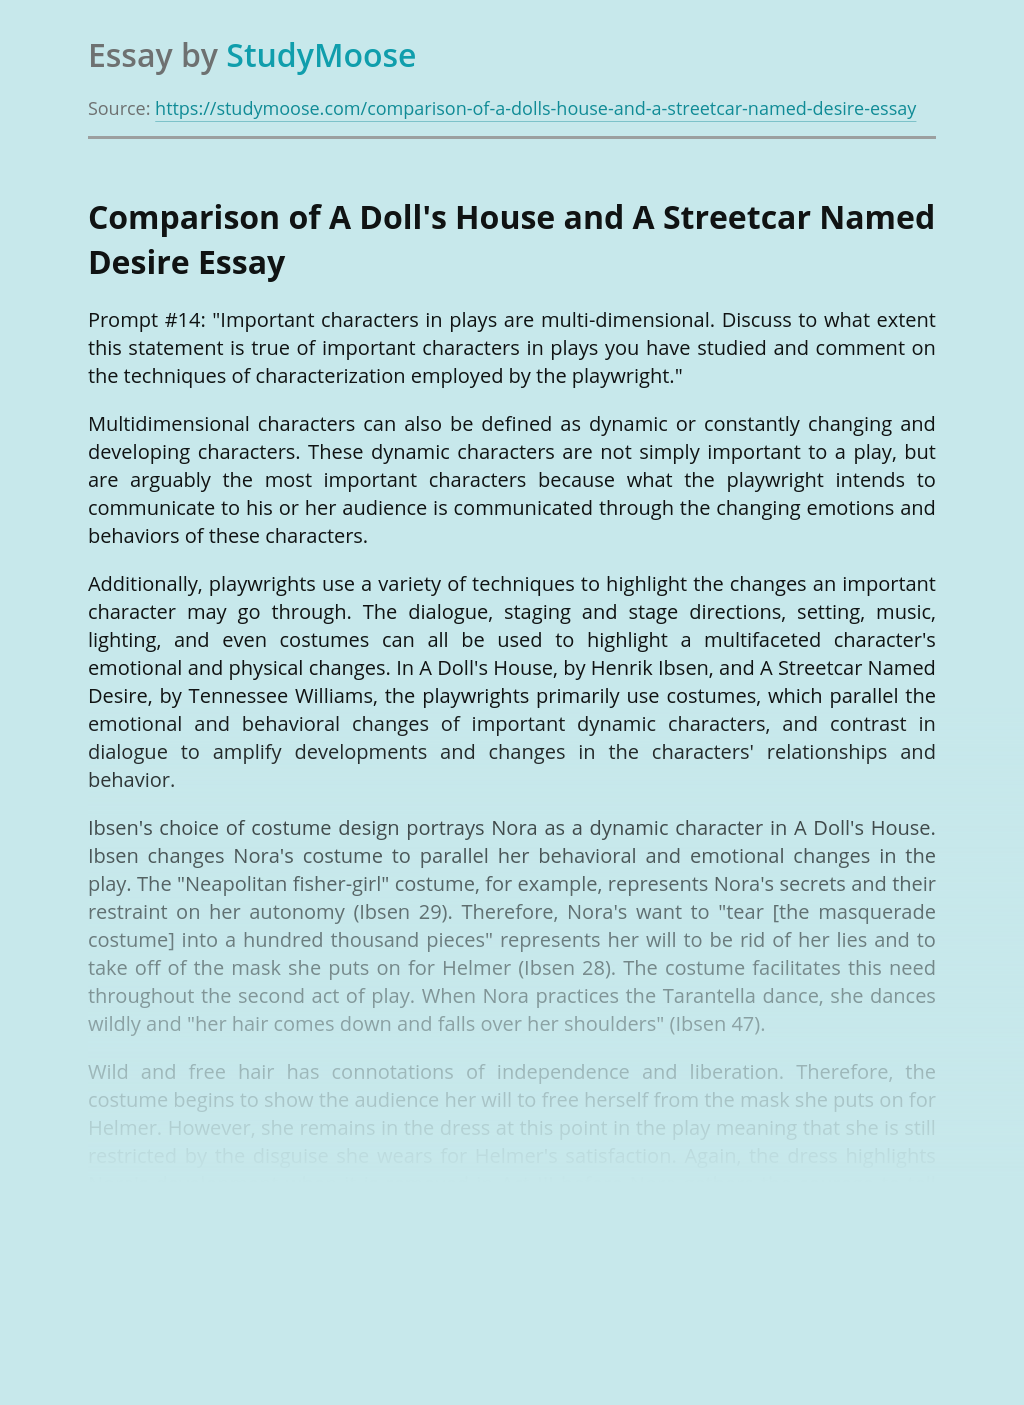 Comparison of A Doll's House and A Streetcar Named Desire